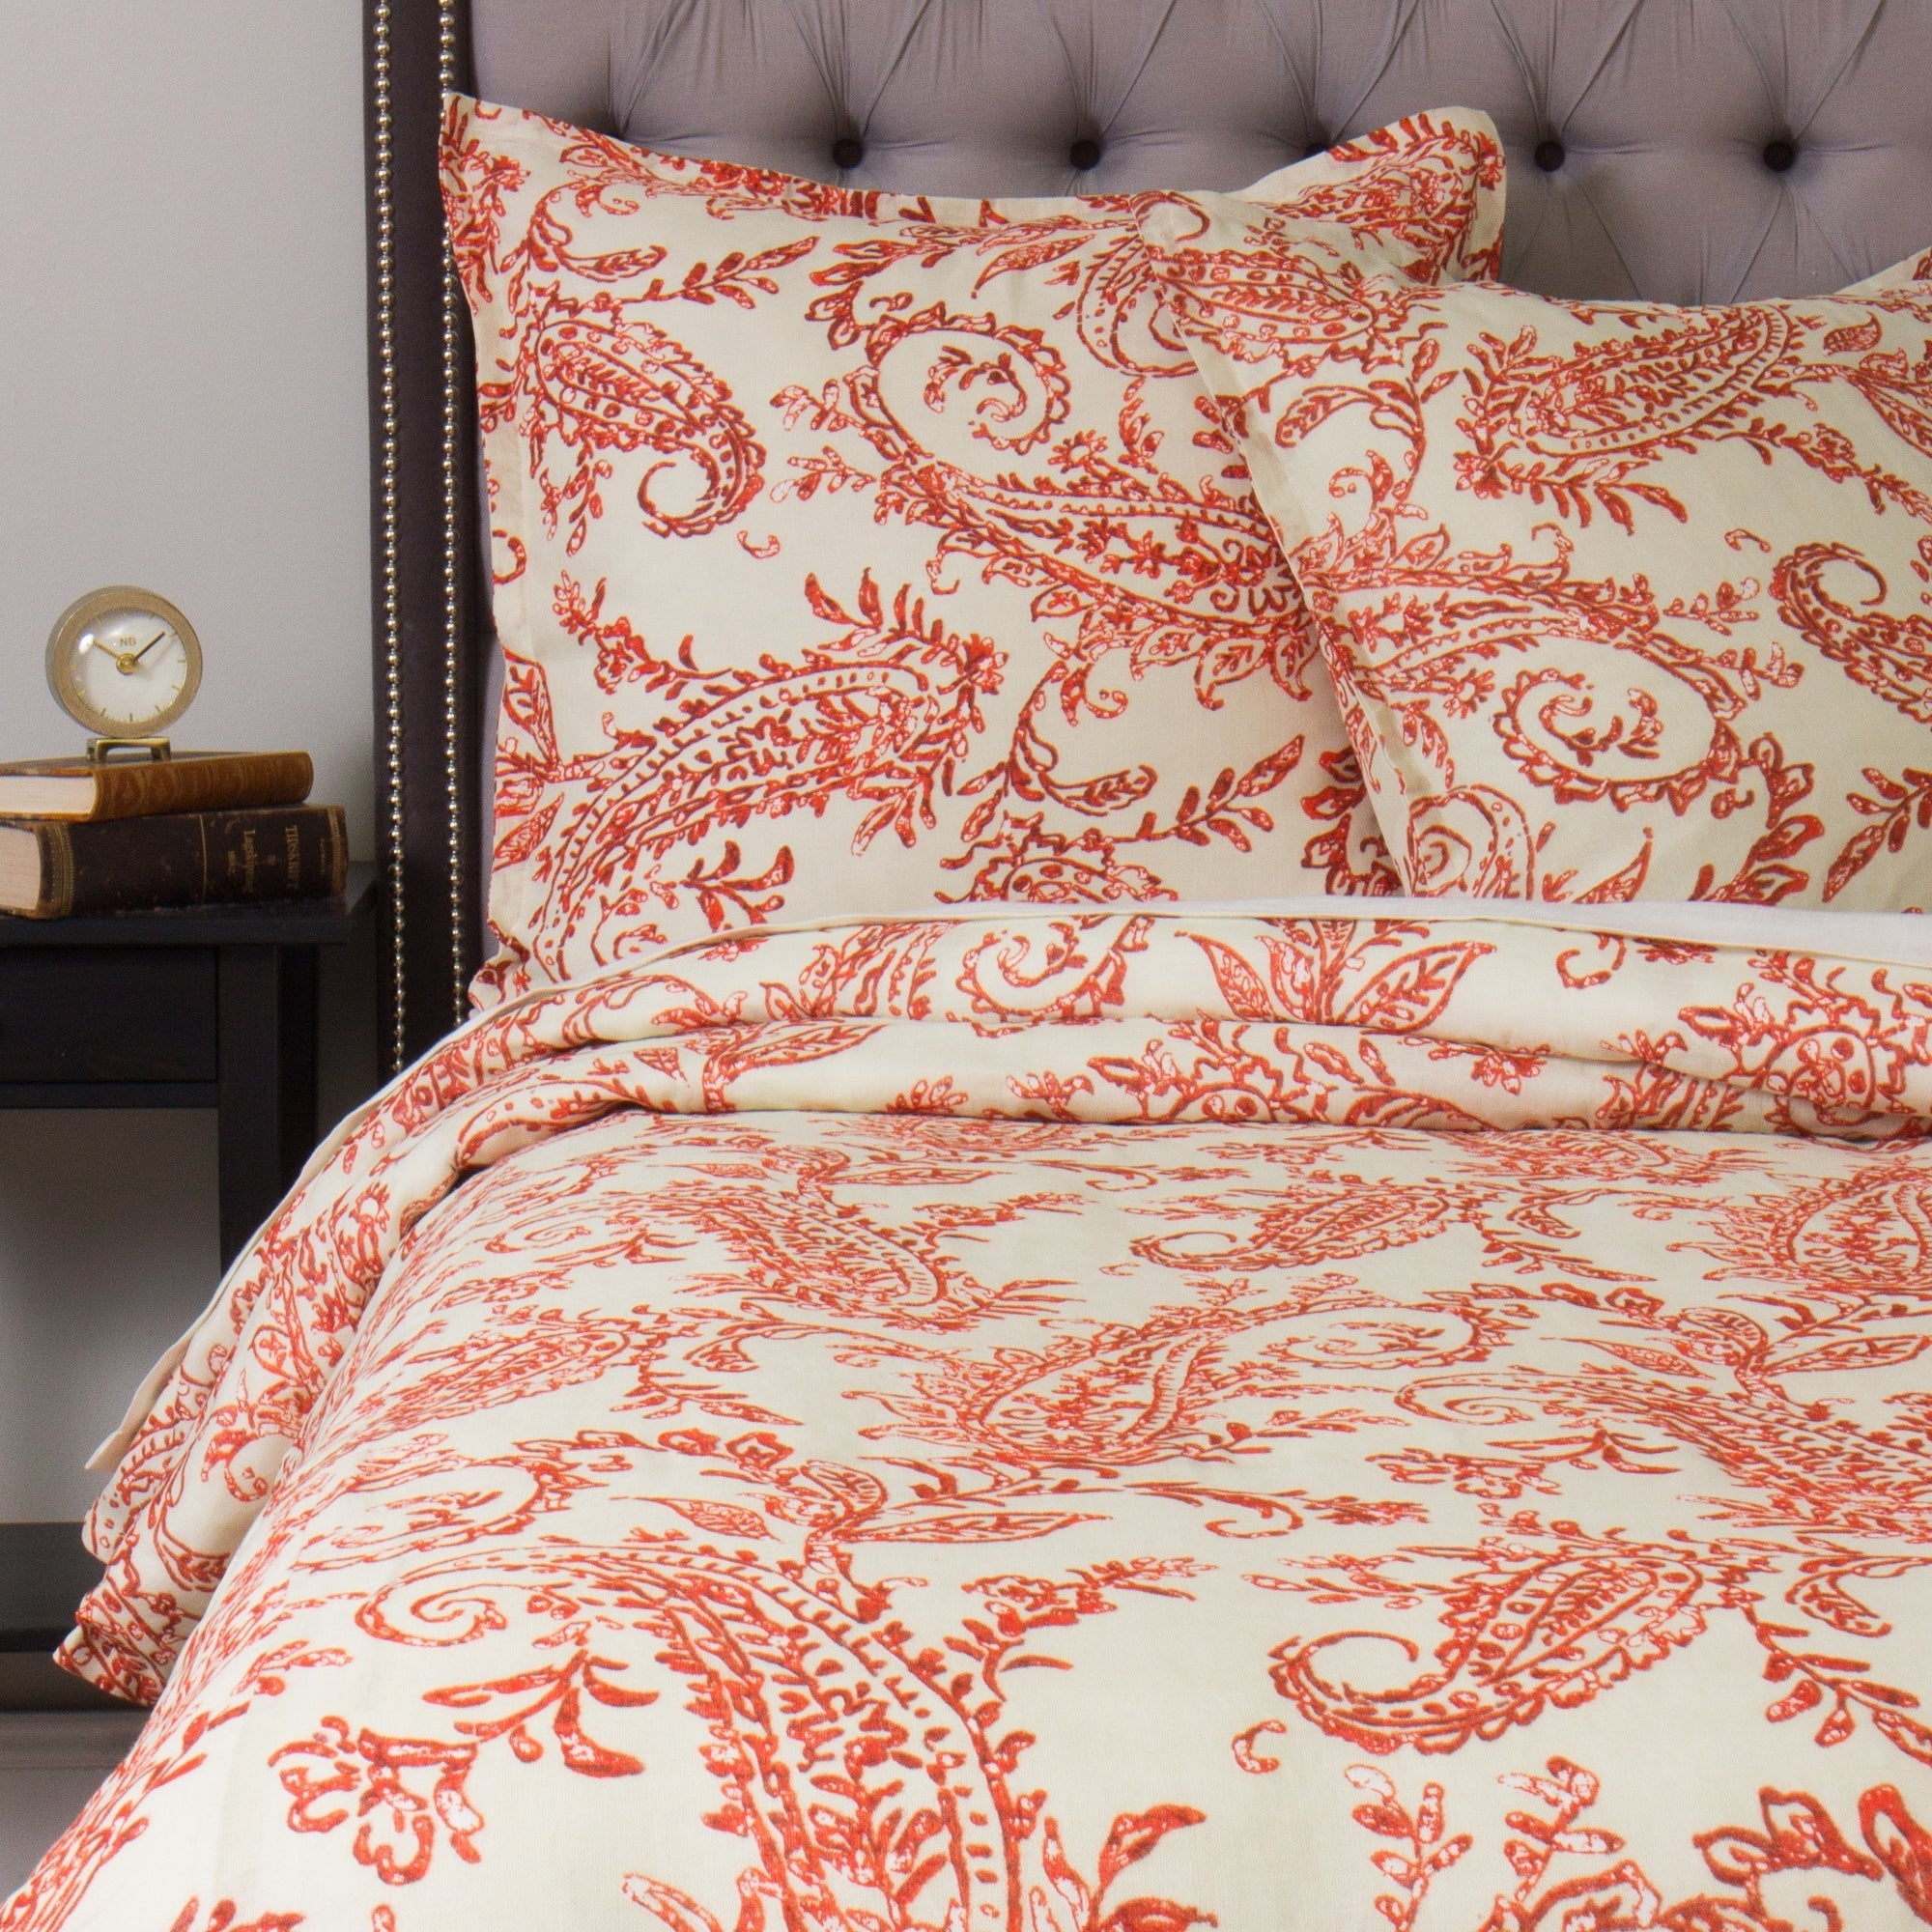 Sierra Orange Paisley Duvet Cover Set On Free Shipping Today 22200498